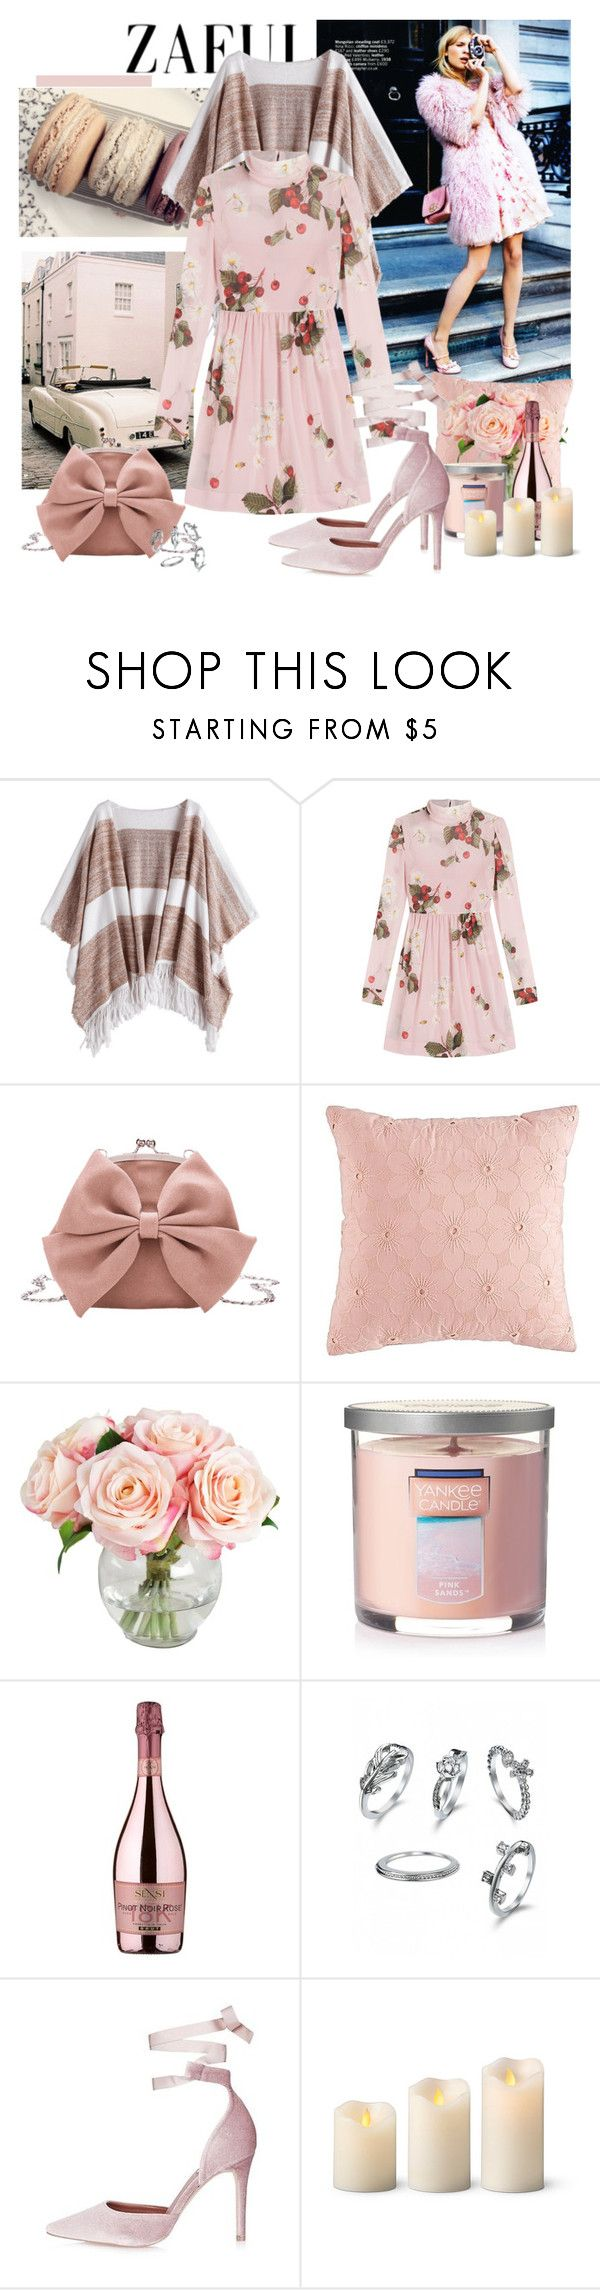 """""""Weekend getaway"""" by moni4e ❤ liked on Polyvore featuring WALL, RED Valentino, Yankee Candle, SENSI, Topshop and Improvements"""